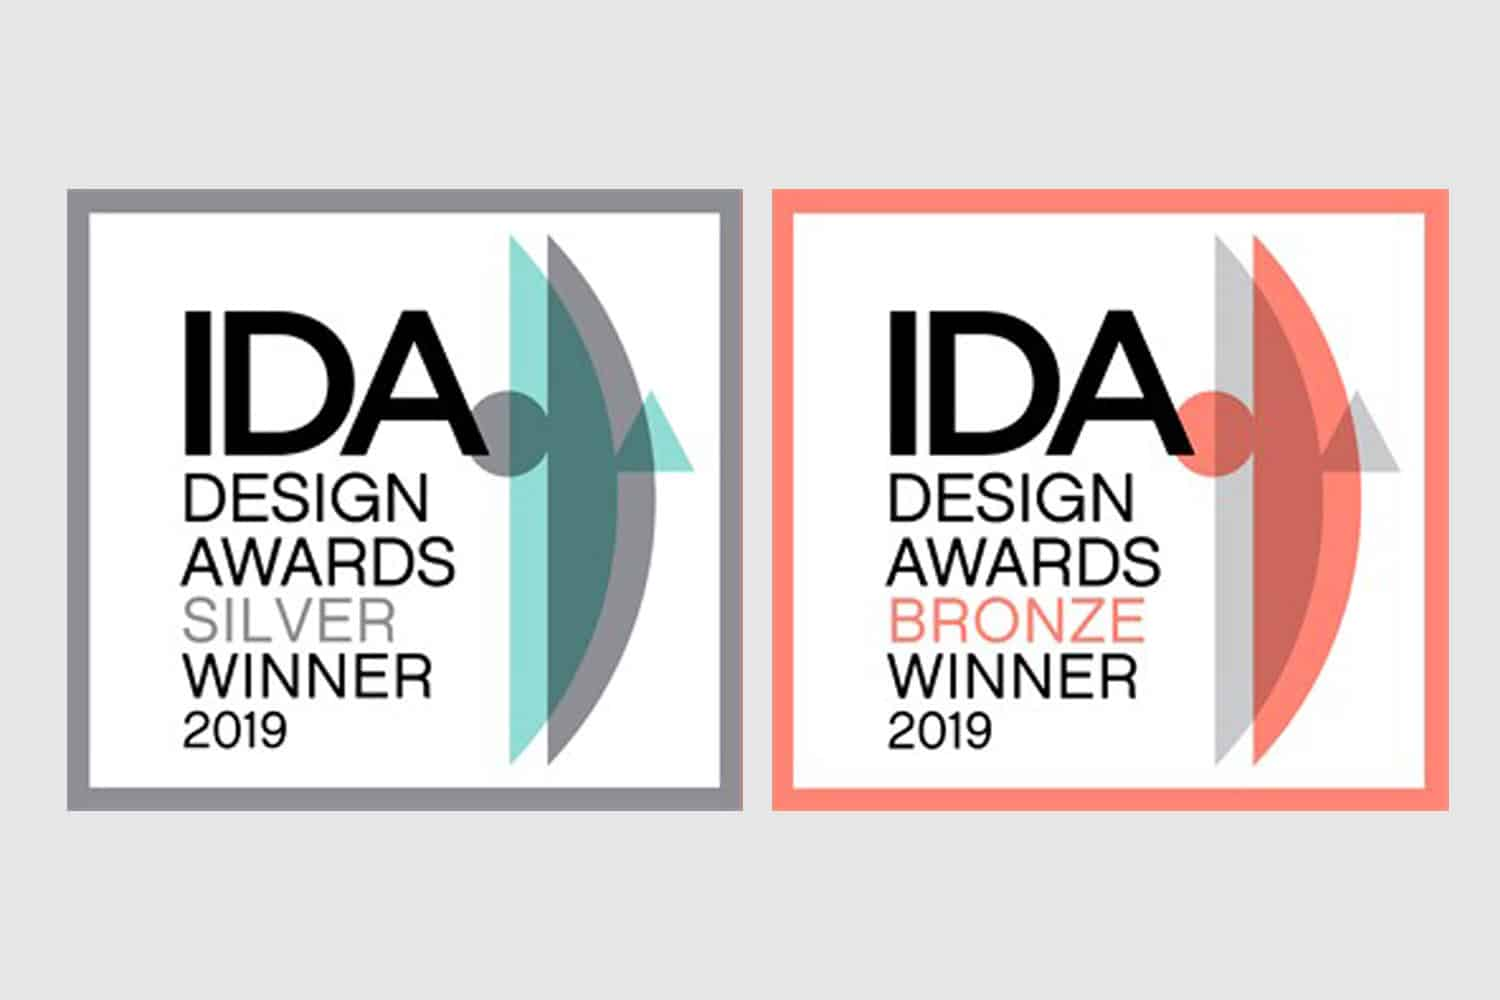 IDA 2019, Project Riedenburg | Winner Silver and Bronze